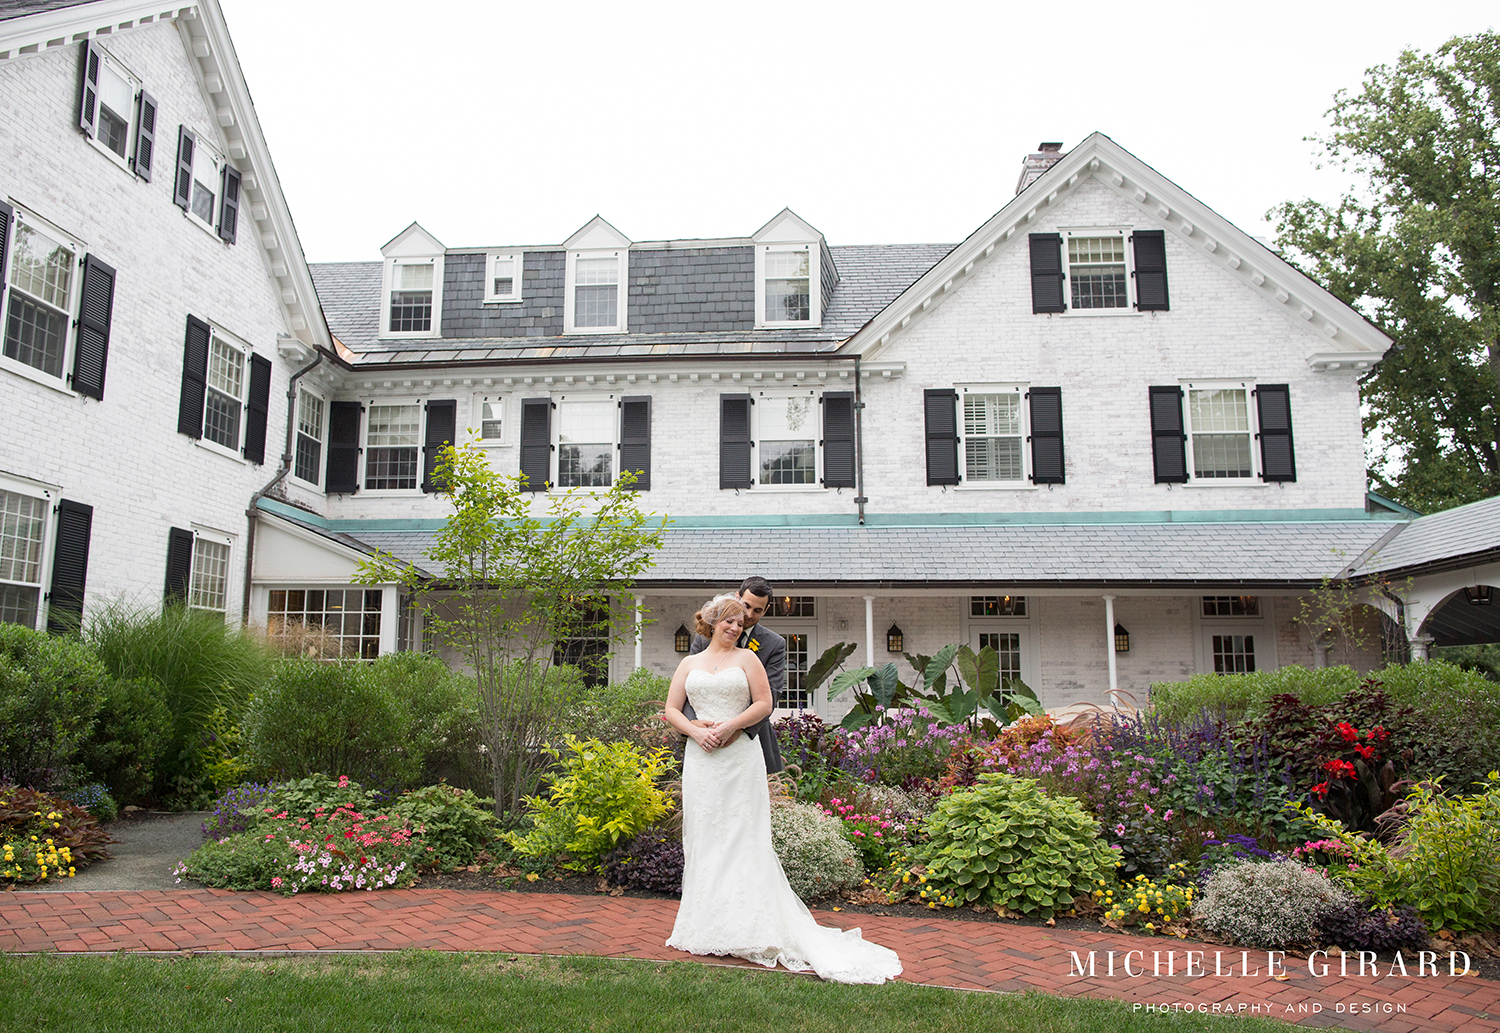 SeptemberWedding_TheLordJefferyInn_AmherstMa_MichelleGirardPhotography02.jpg